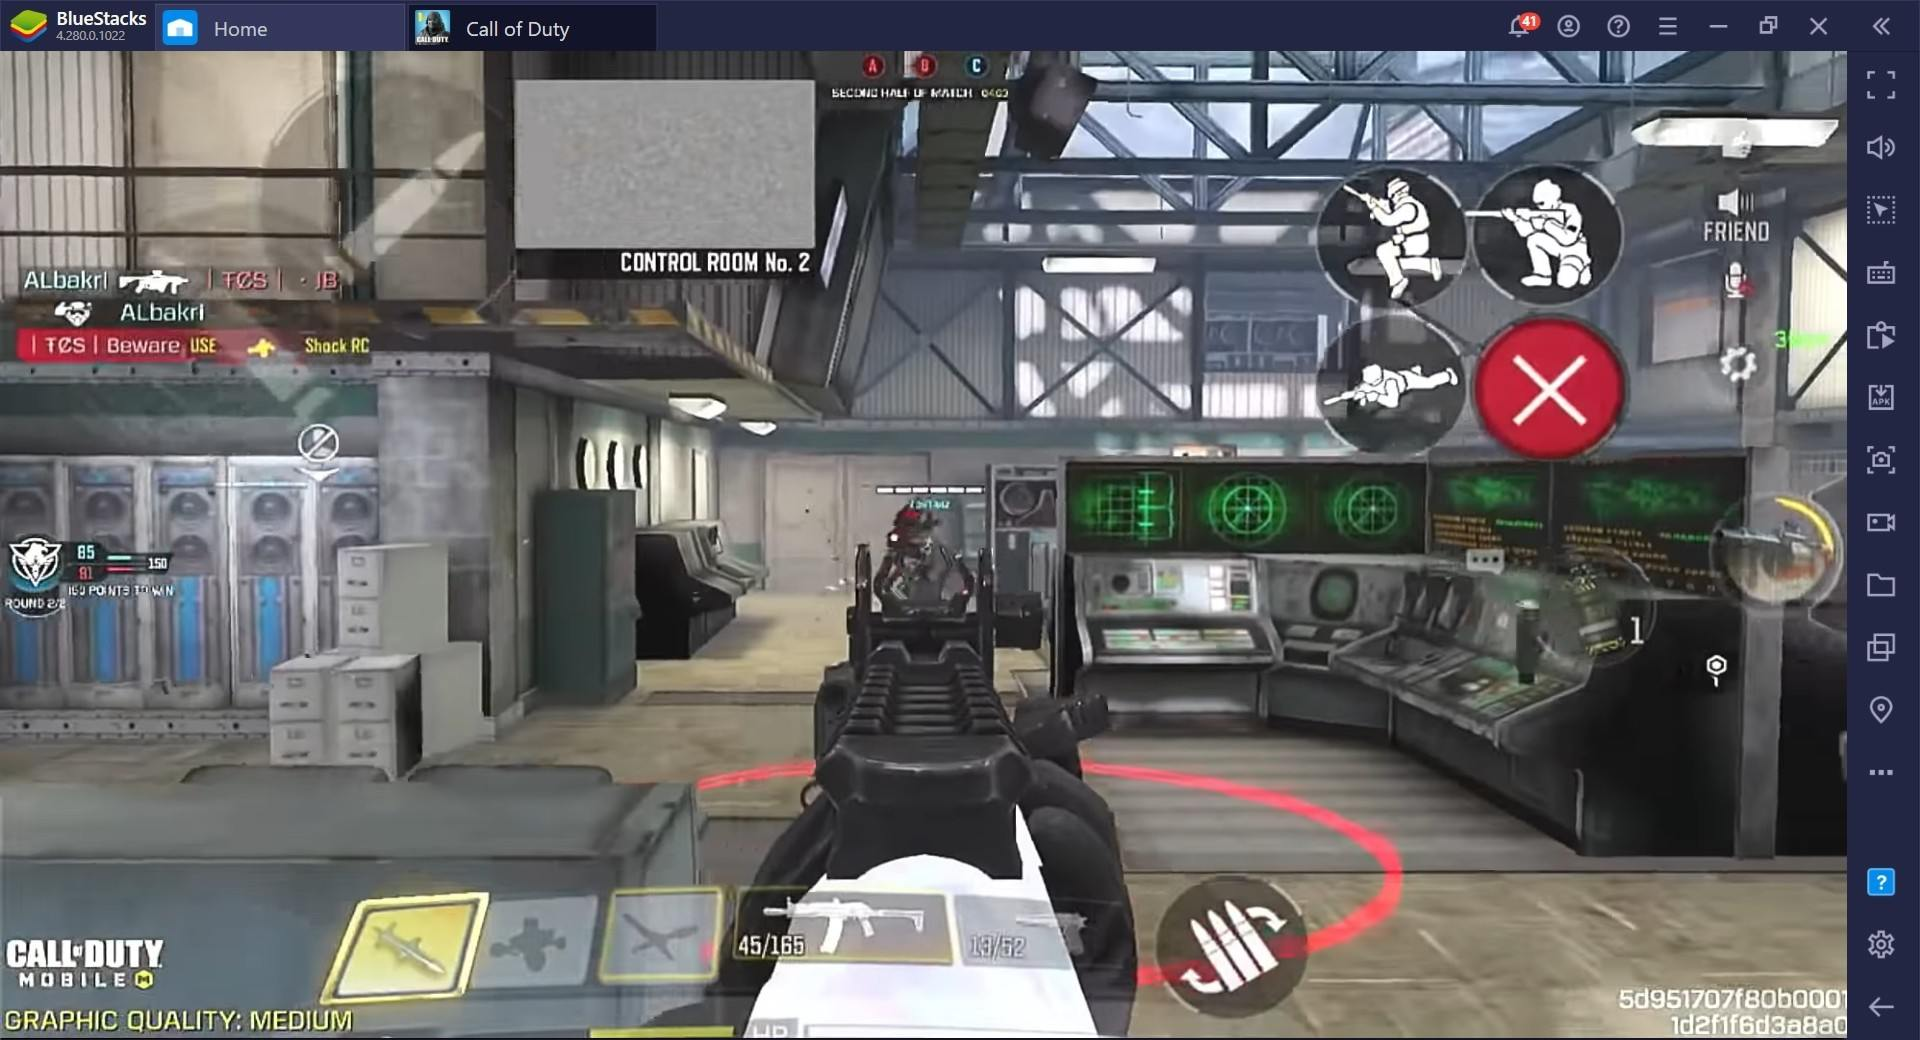 Call of Duty: Mobile Multiplayer Mode Guide For High Ranking Players